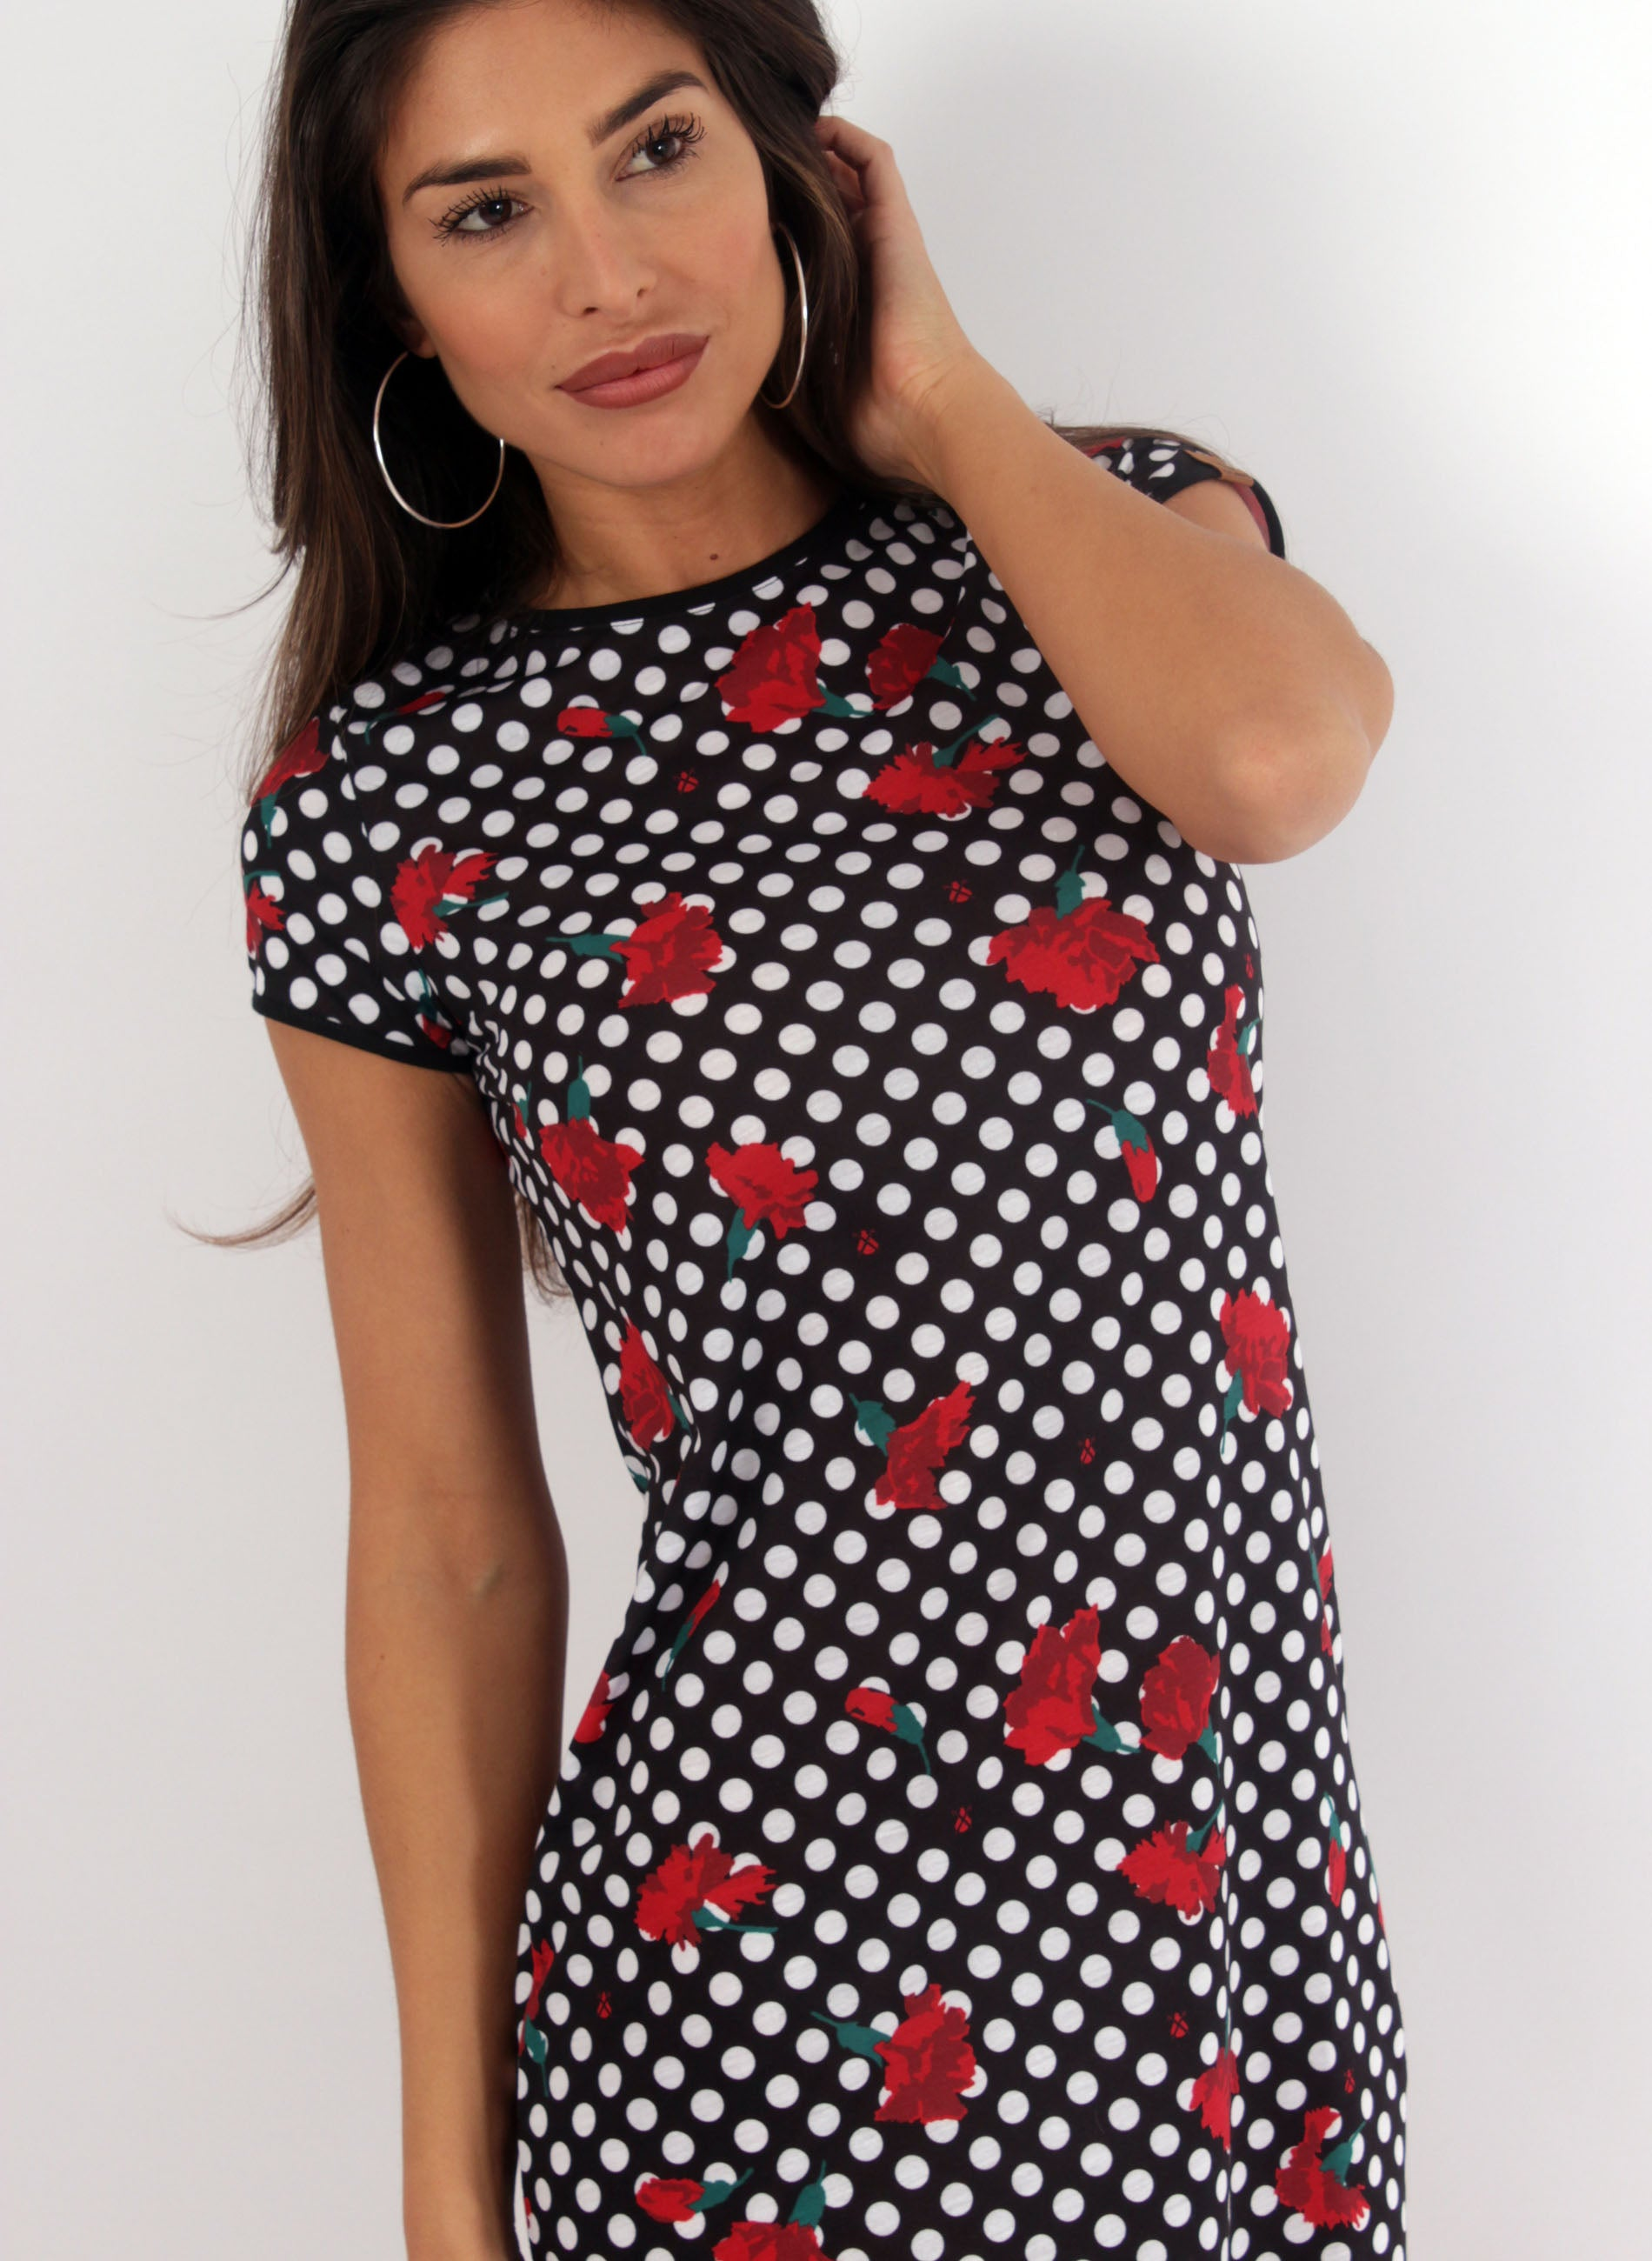 Black Dress White Polka Dots Woman